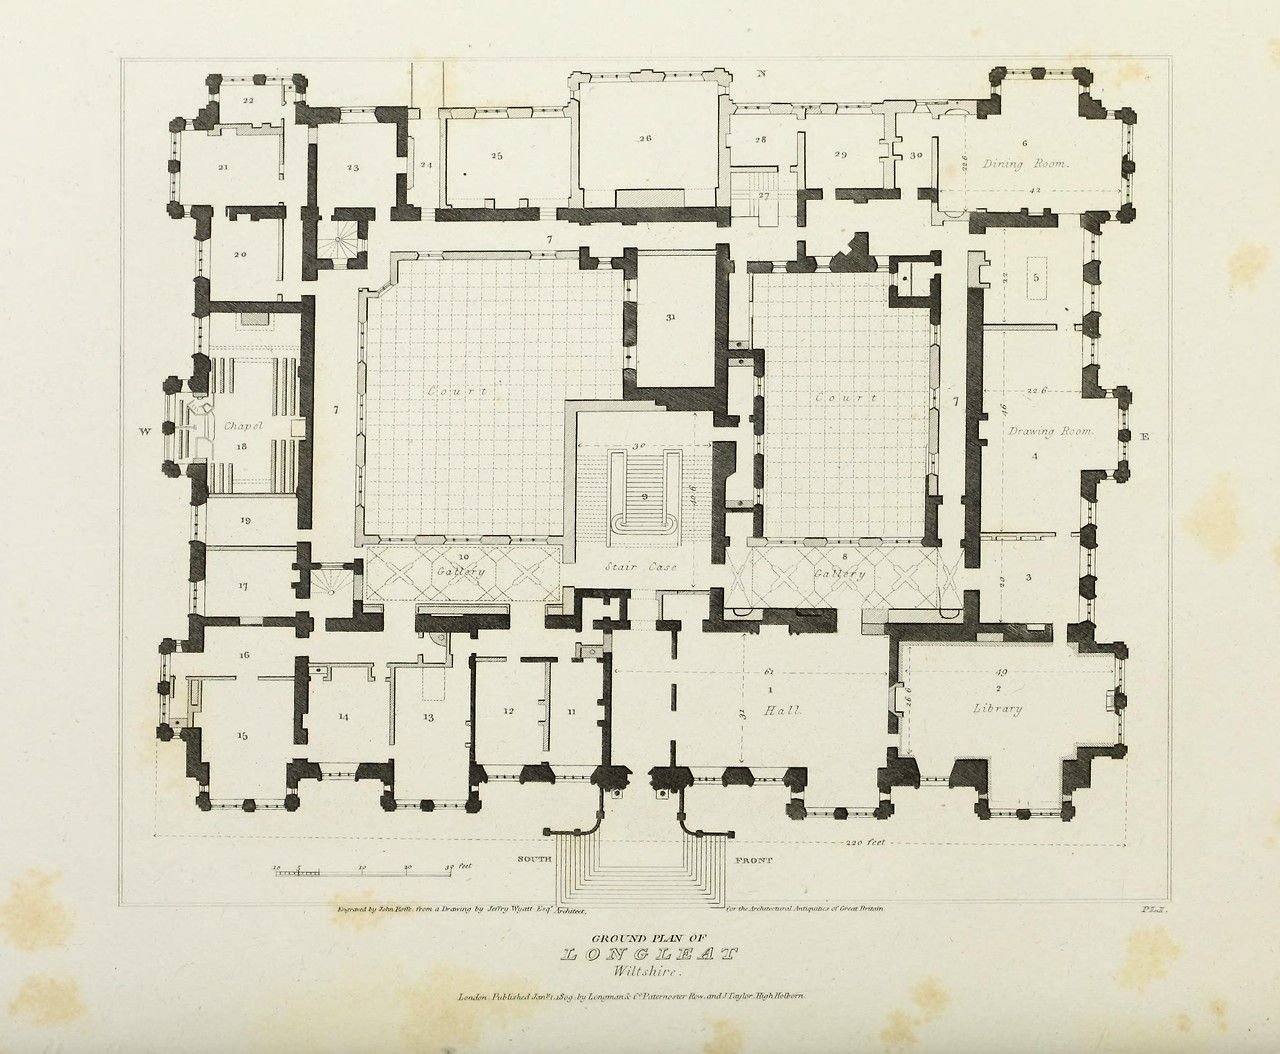 Pin By Laura Banse On Floor Plans Castles Palaces Architectural Floor Plans Floor Plans House Floor Plans